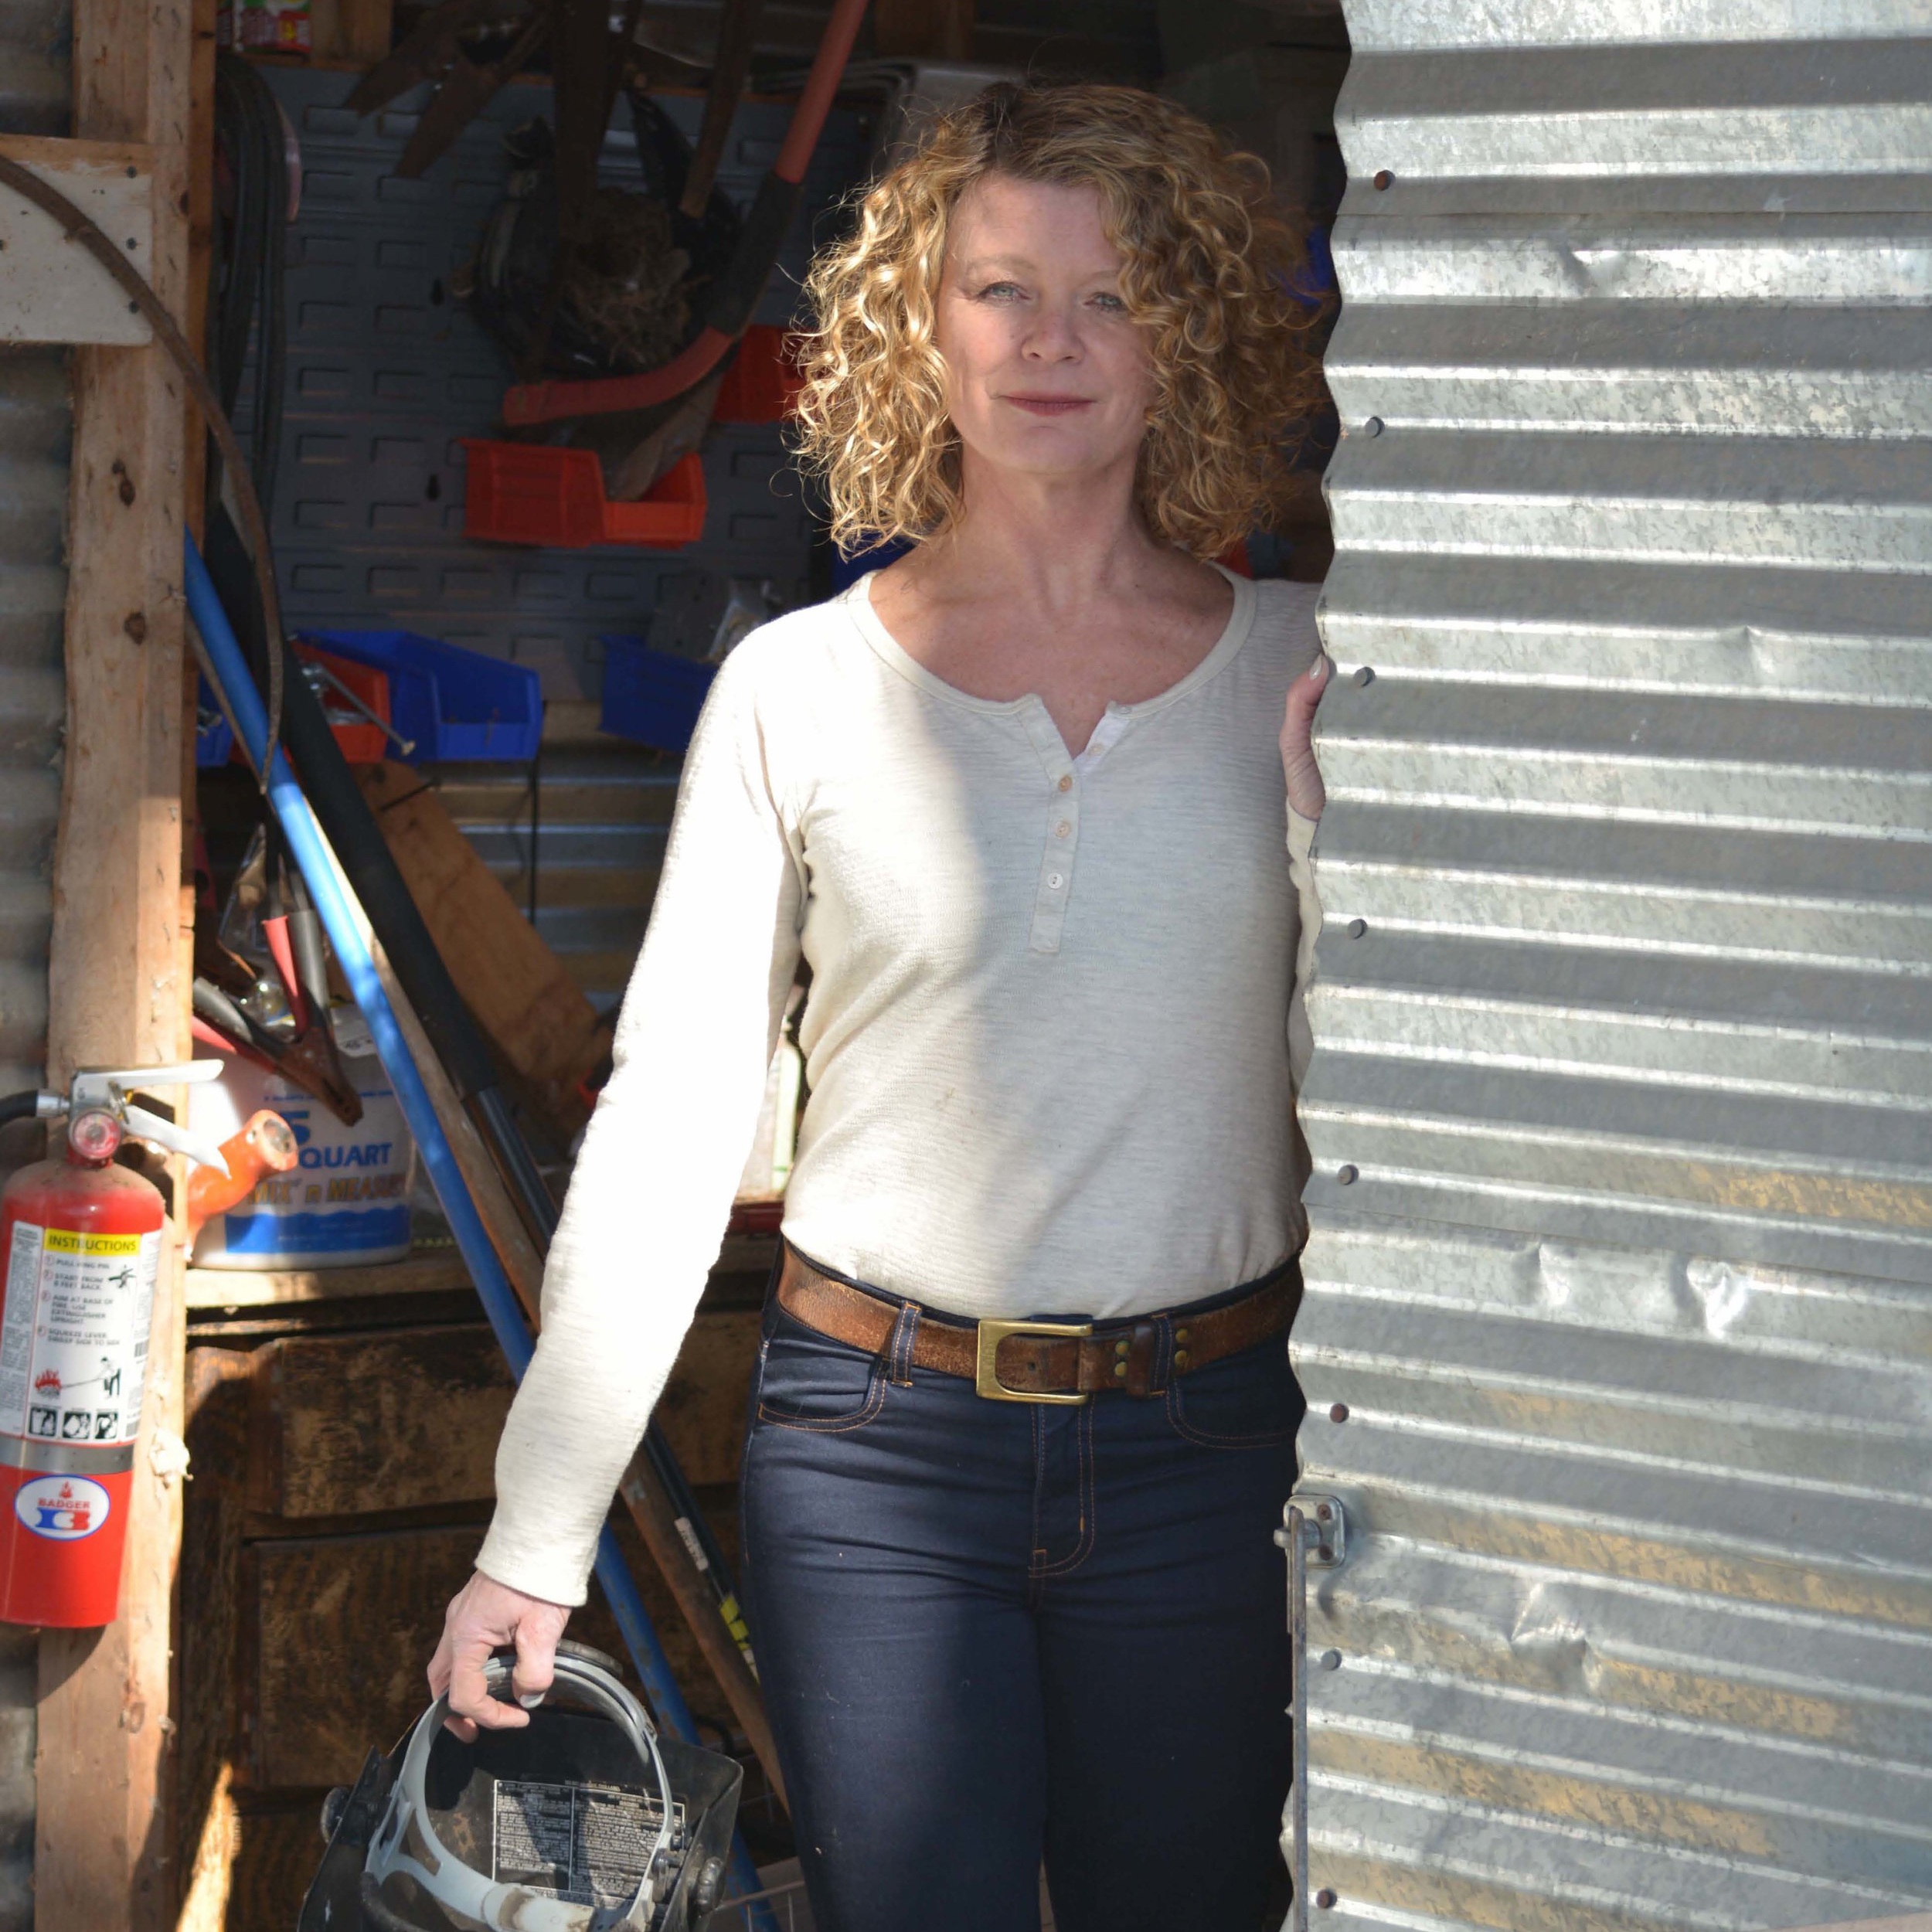 Evelyn Tickle stands smiling at the camera next to a corrugated tin wall. She has shoulder length, curly blonde hair and is wearing jeans and a cream, long sleeve t-shirt.